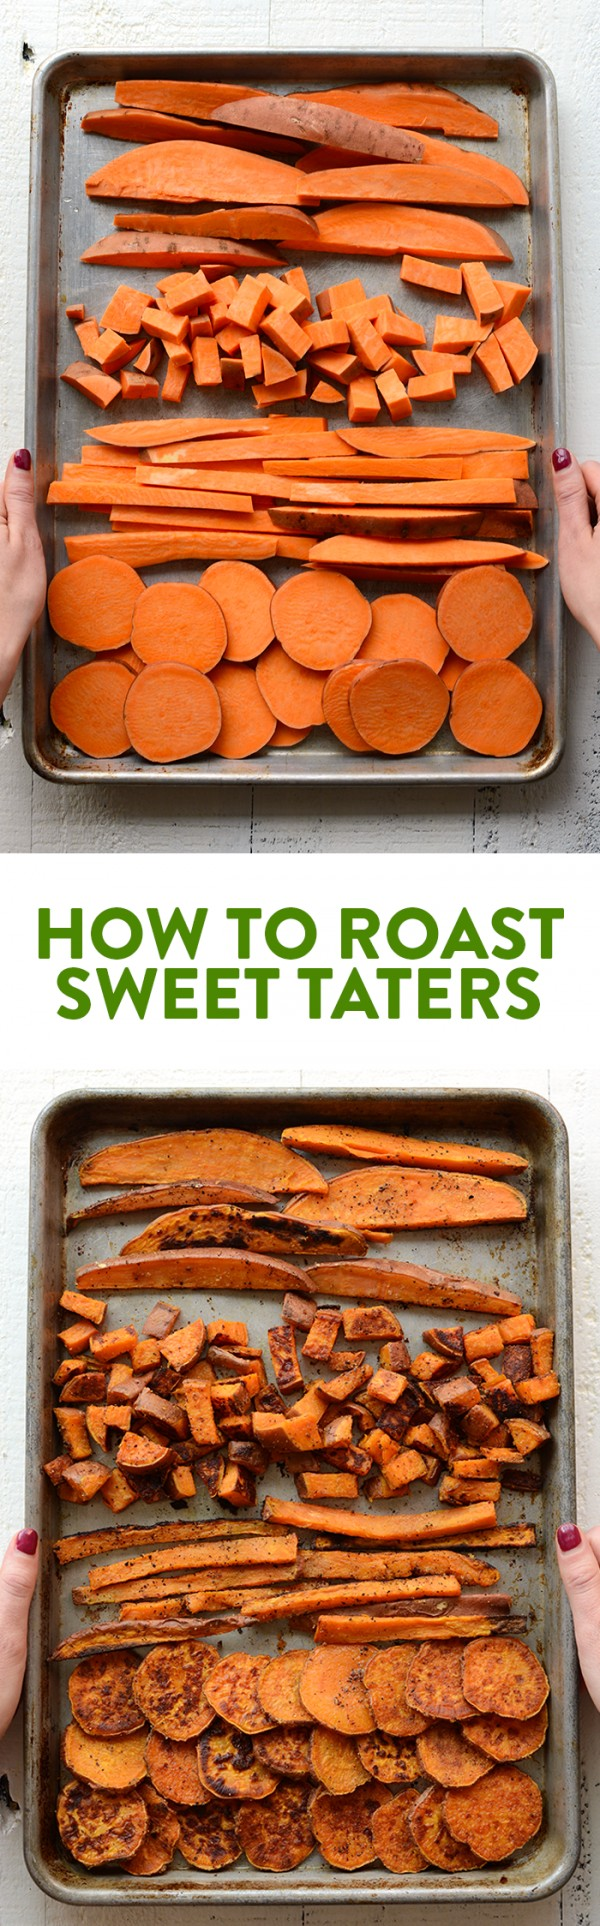 Get the recipe How to Roast Sweet Taters @recipes_to_go